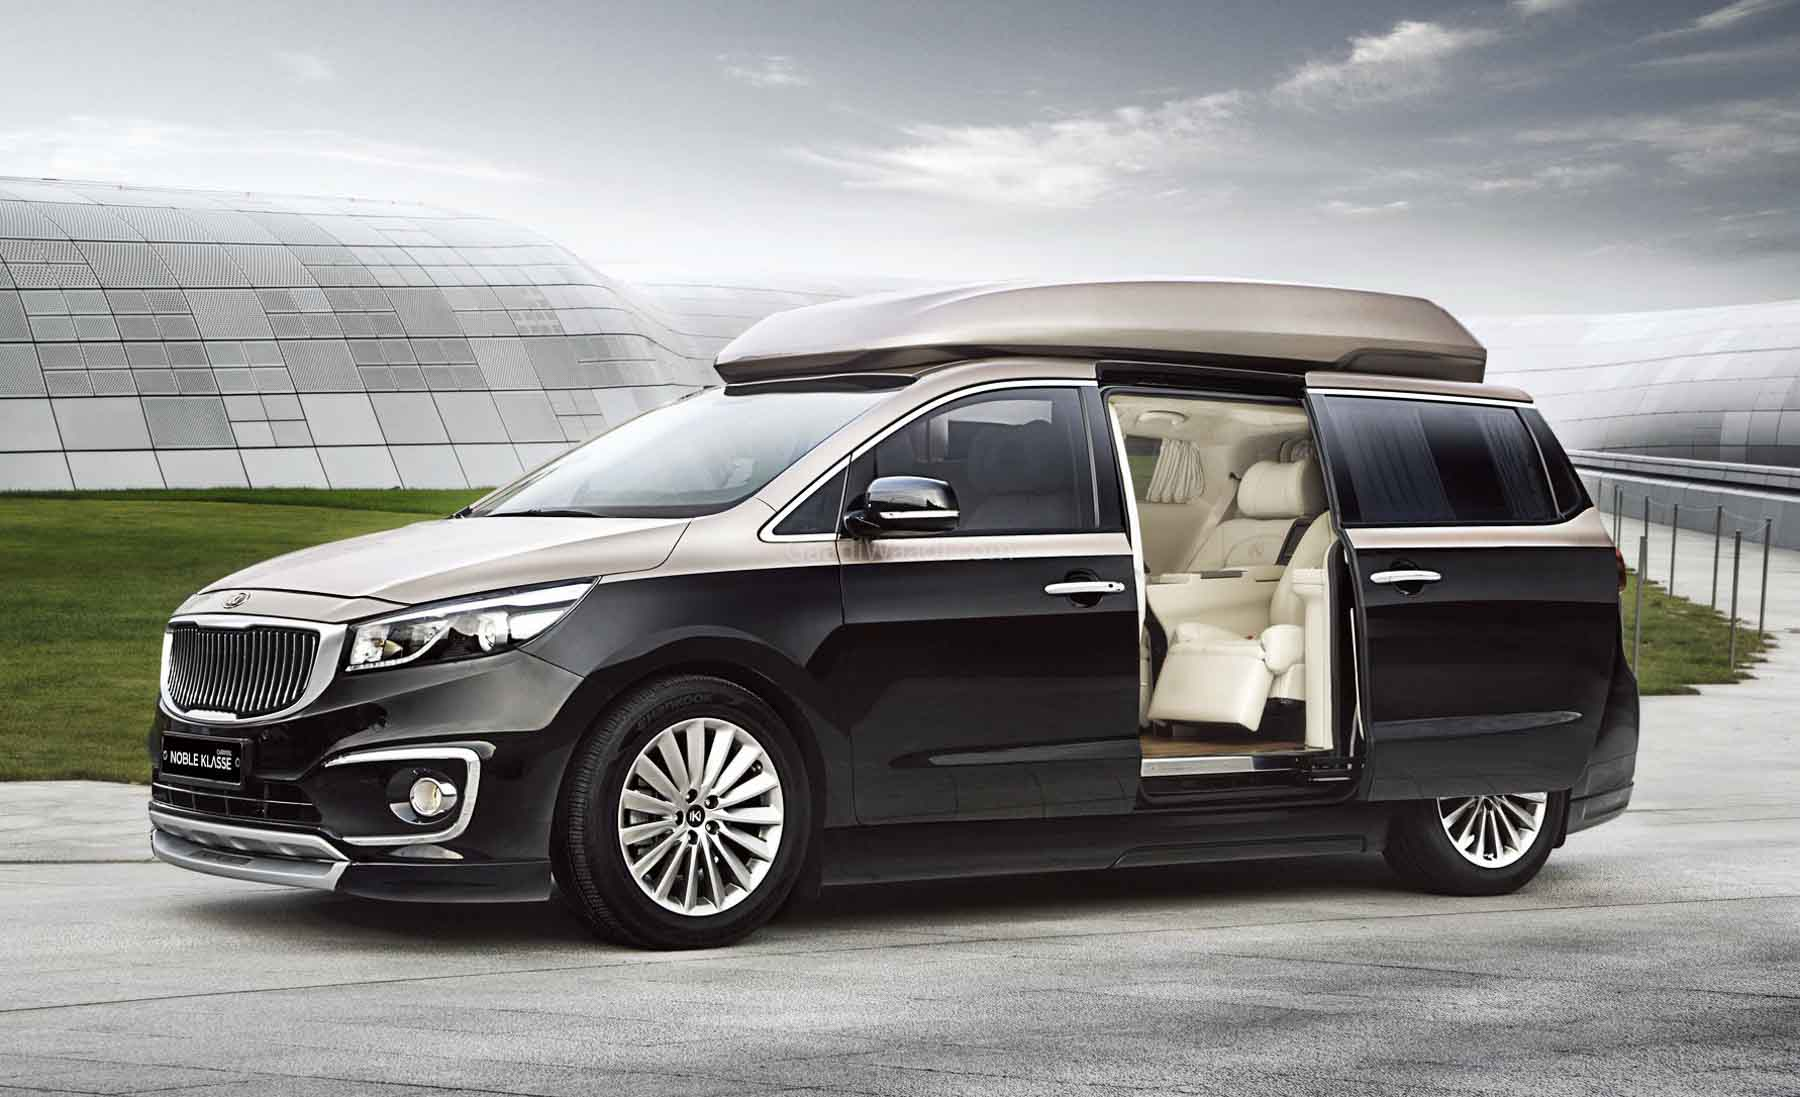 2021 Kia Carnival To Offer 4-seater Variant To Rival Lexus LM